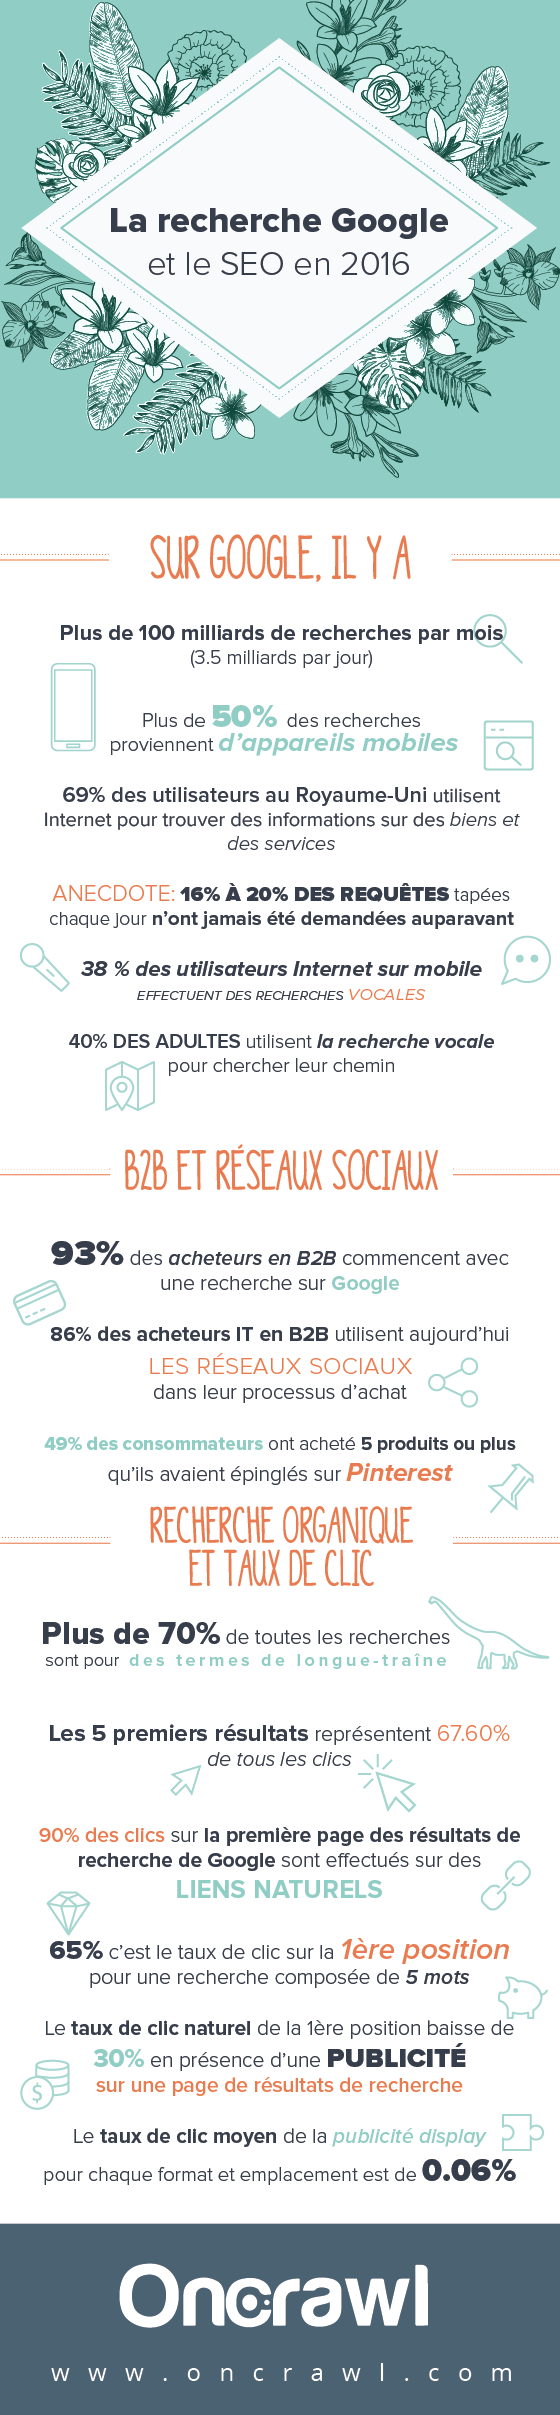 infographie-google-search-seo-2016